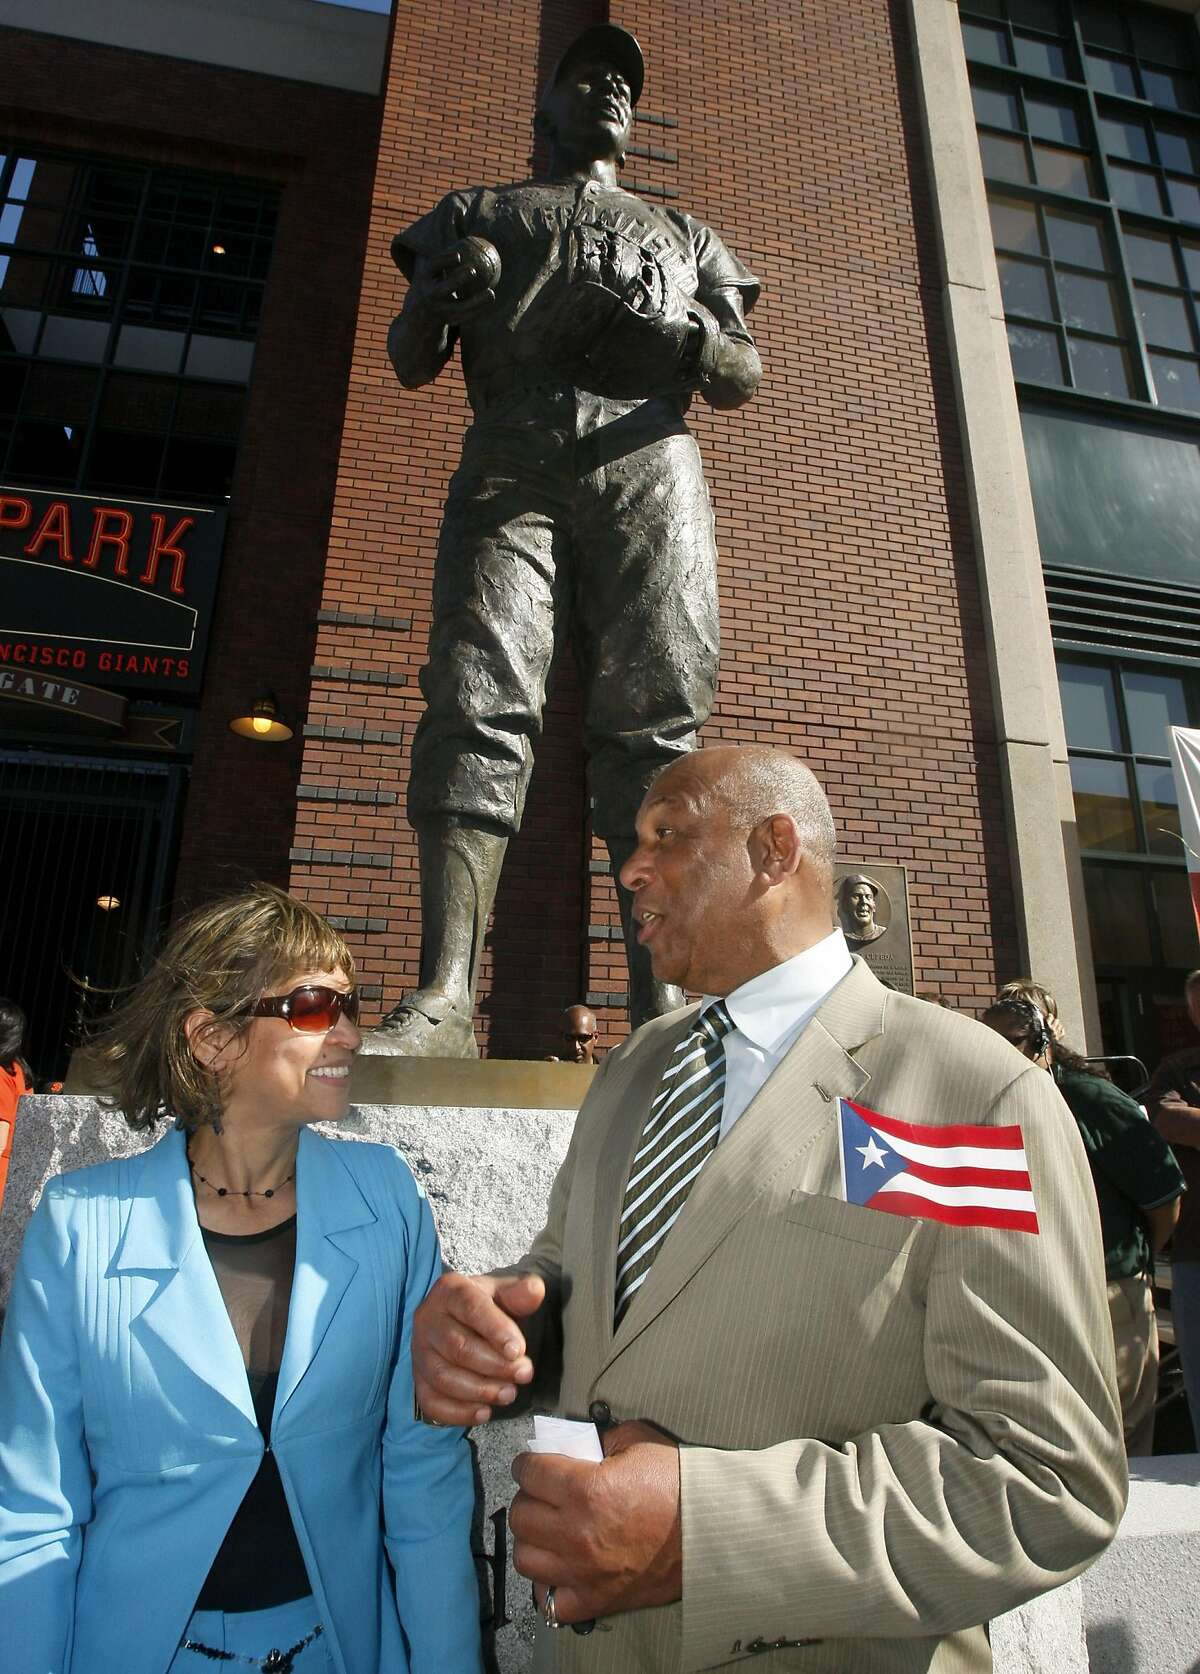 Hall of Famer Orlando Cepeda and his wife Miriam stand below his statue that the San Francisco Giants formally dedicated at AT&T Park in San Francisco, Calif., on Saturday, Sept. 6, 2008.